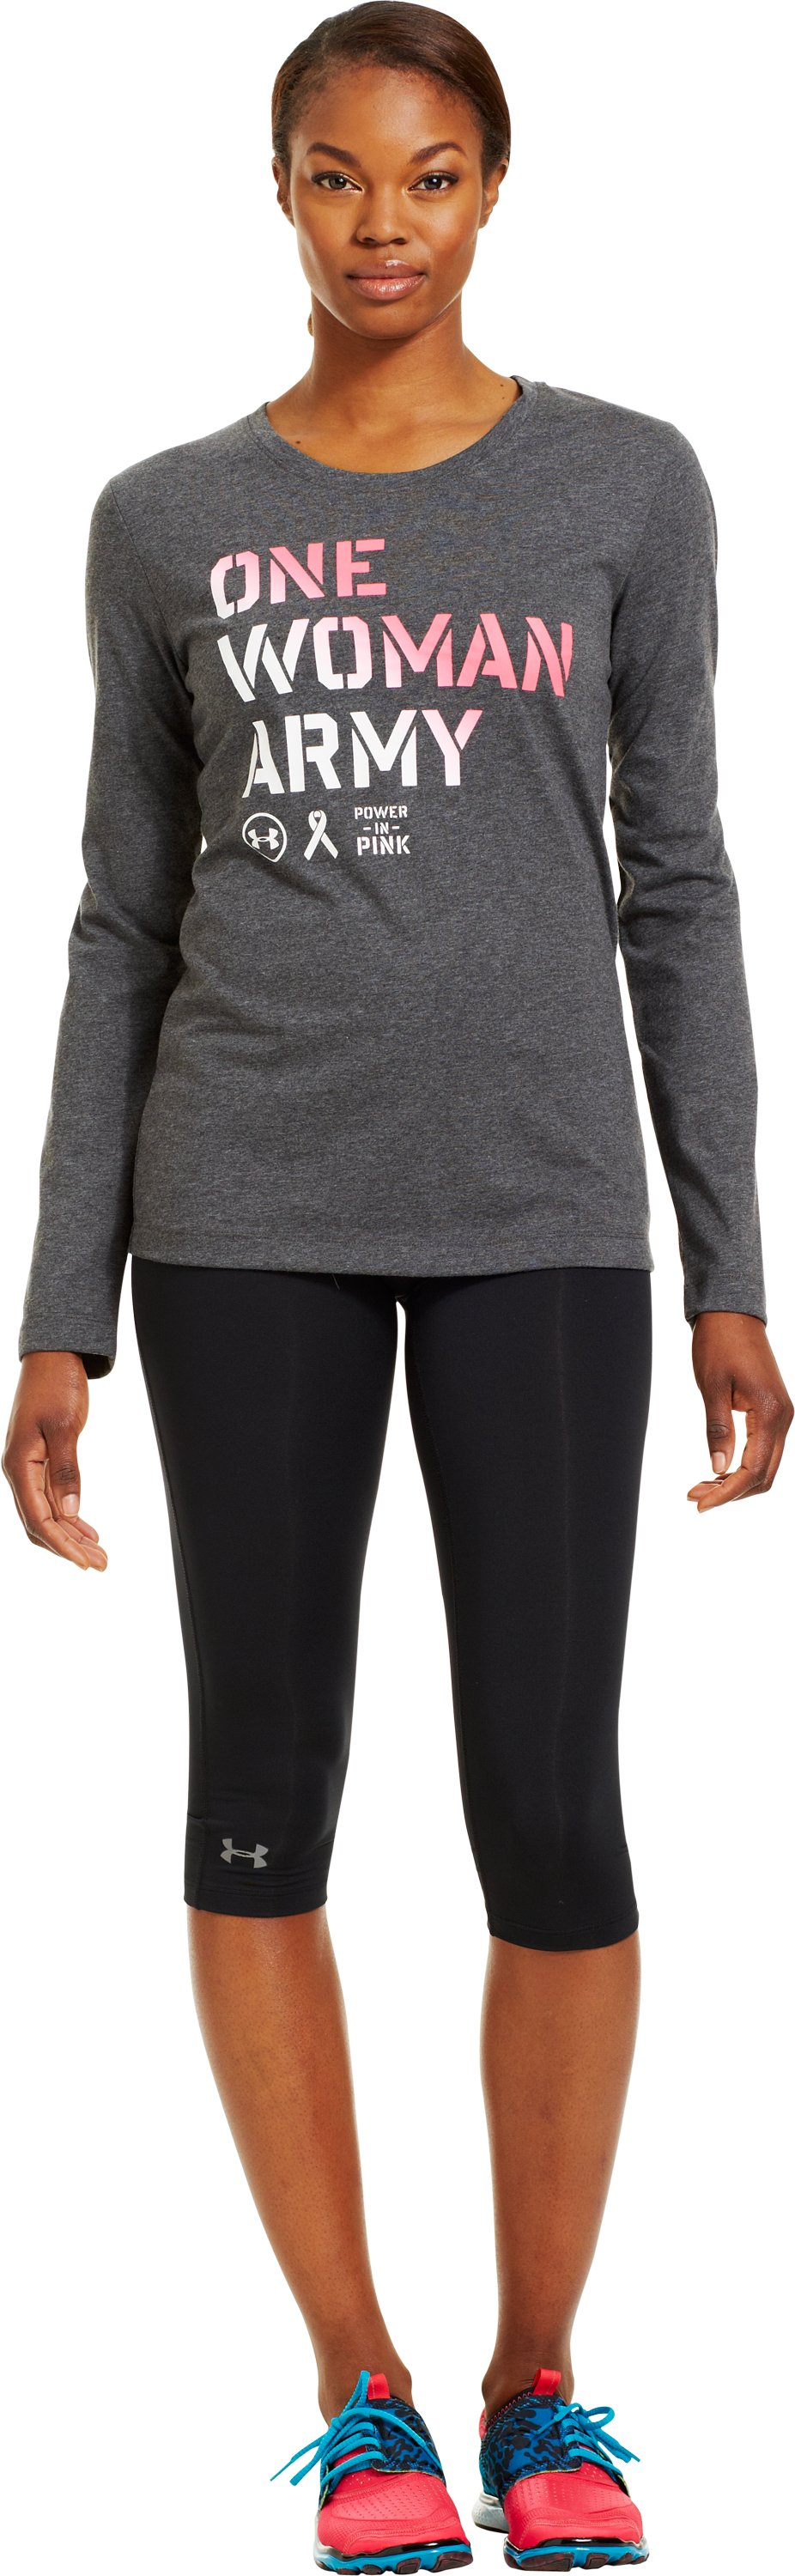 Women's UA PIP® One Woman Army Long Sleeve, Carbon Heather, Front